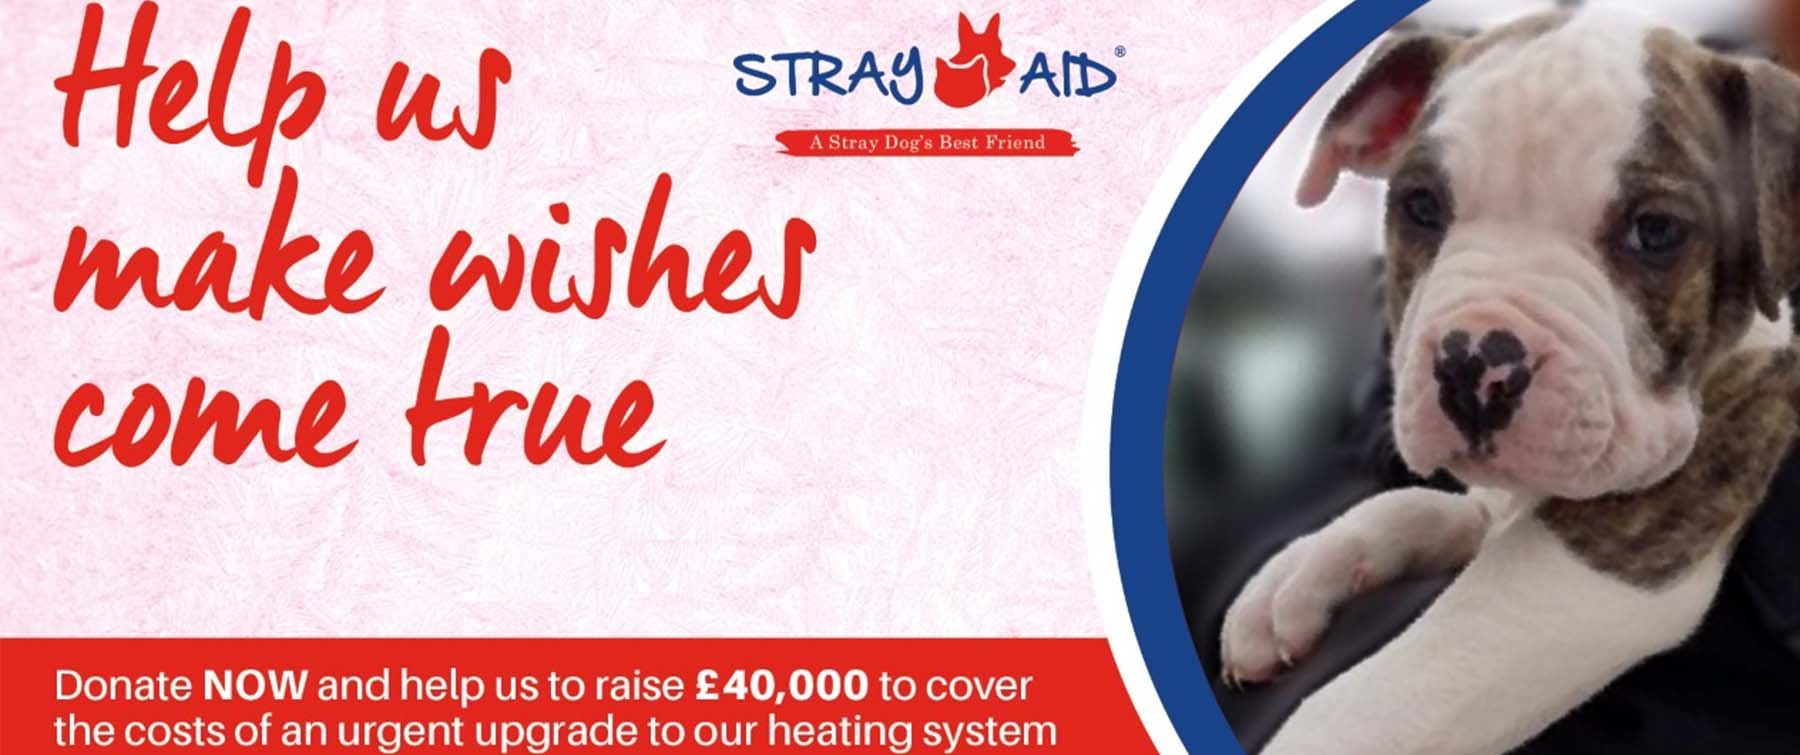 Stray Aid - The Urgent Heating Upgrade Appeal